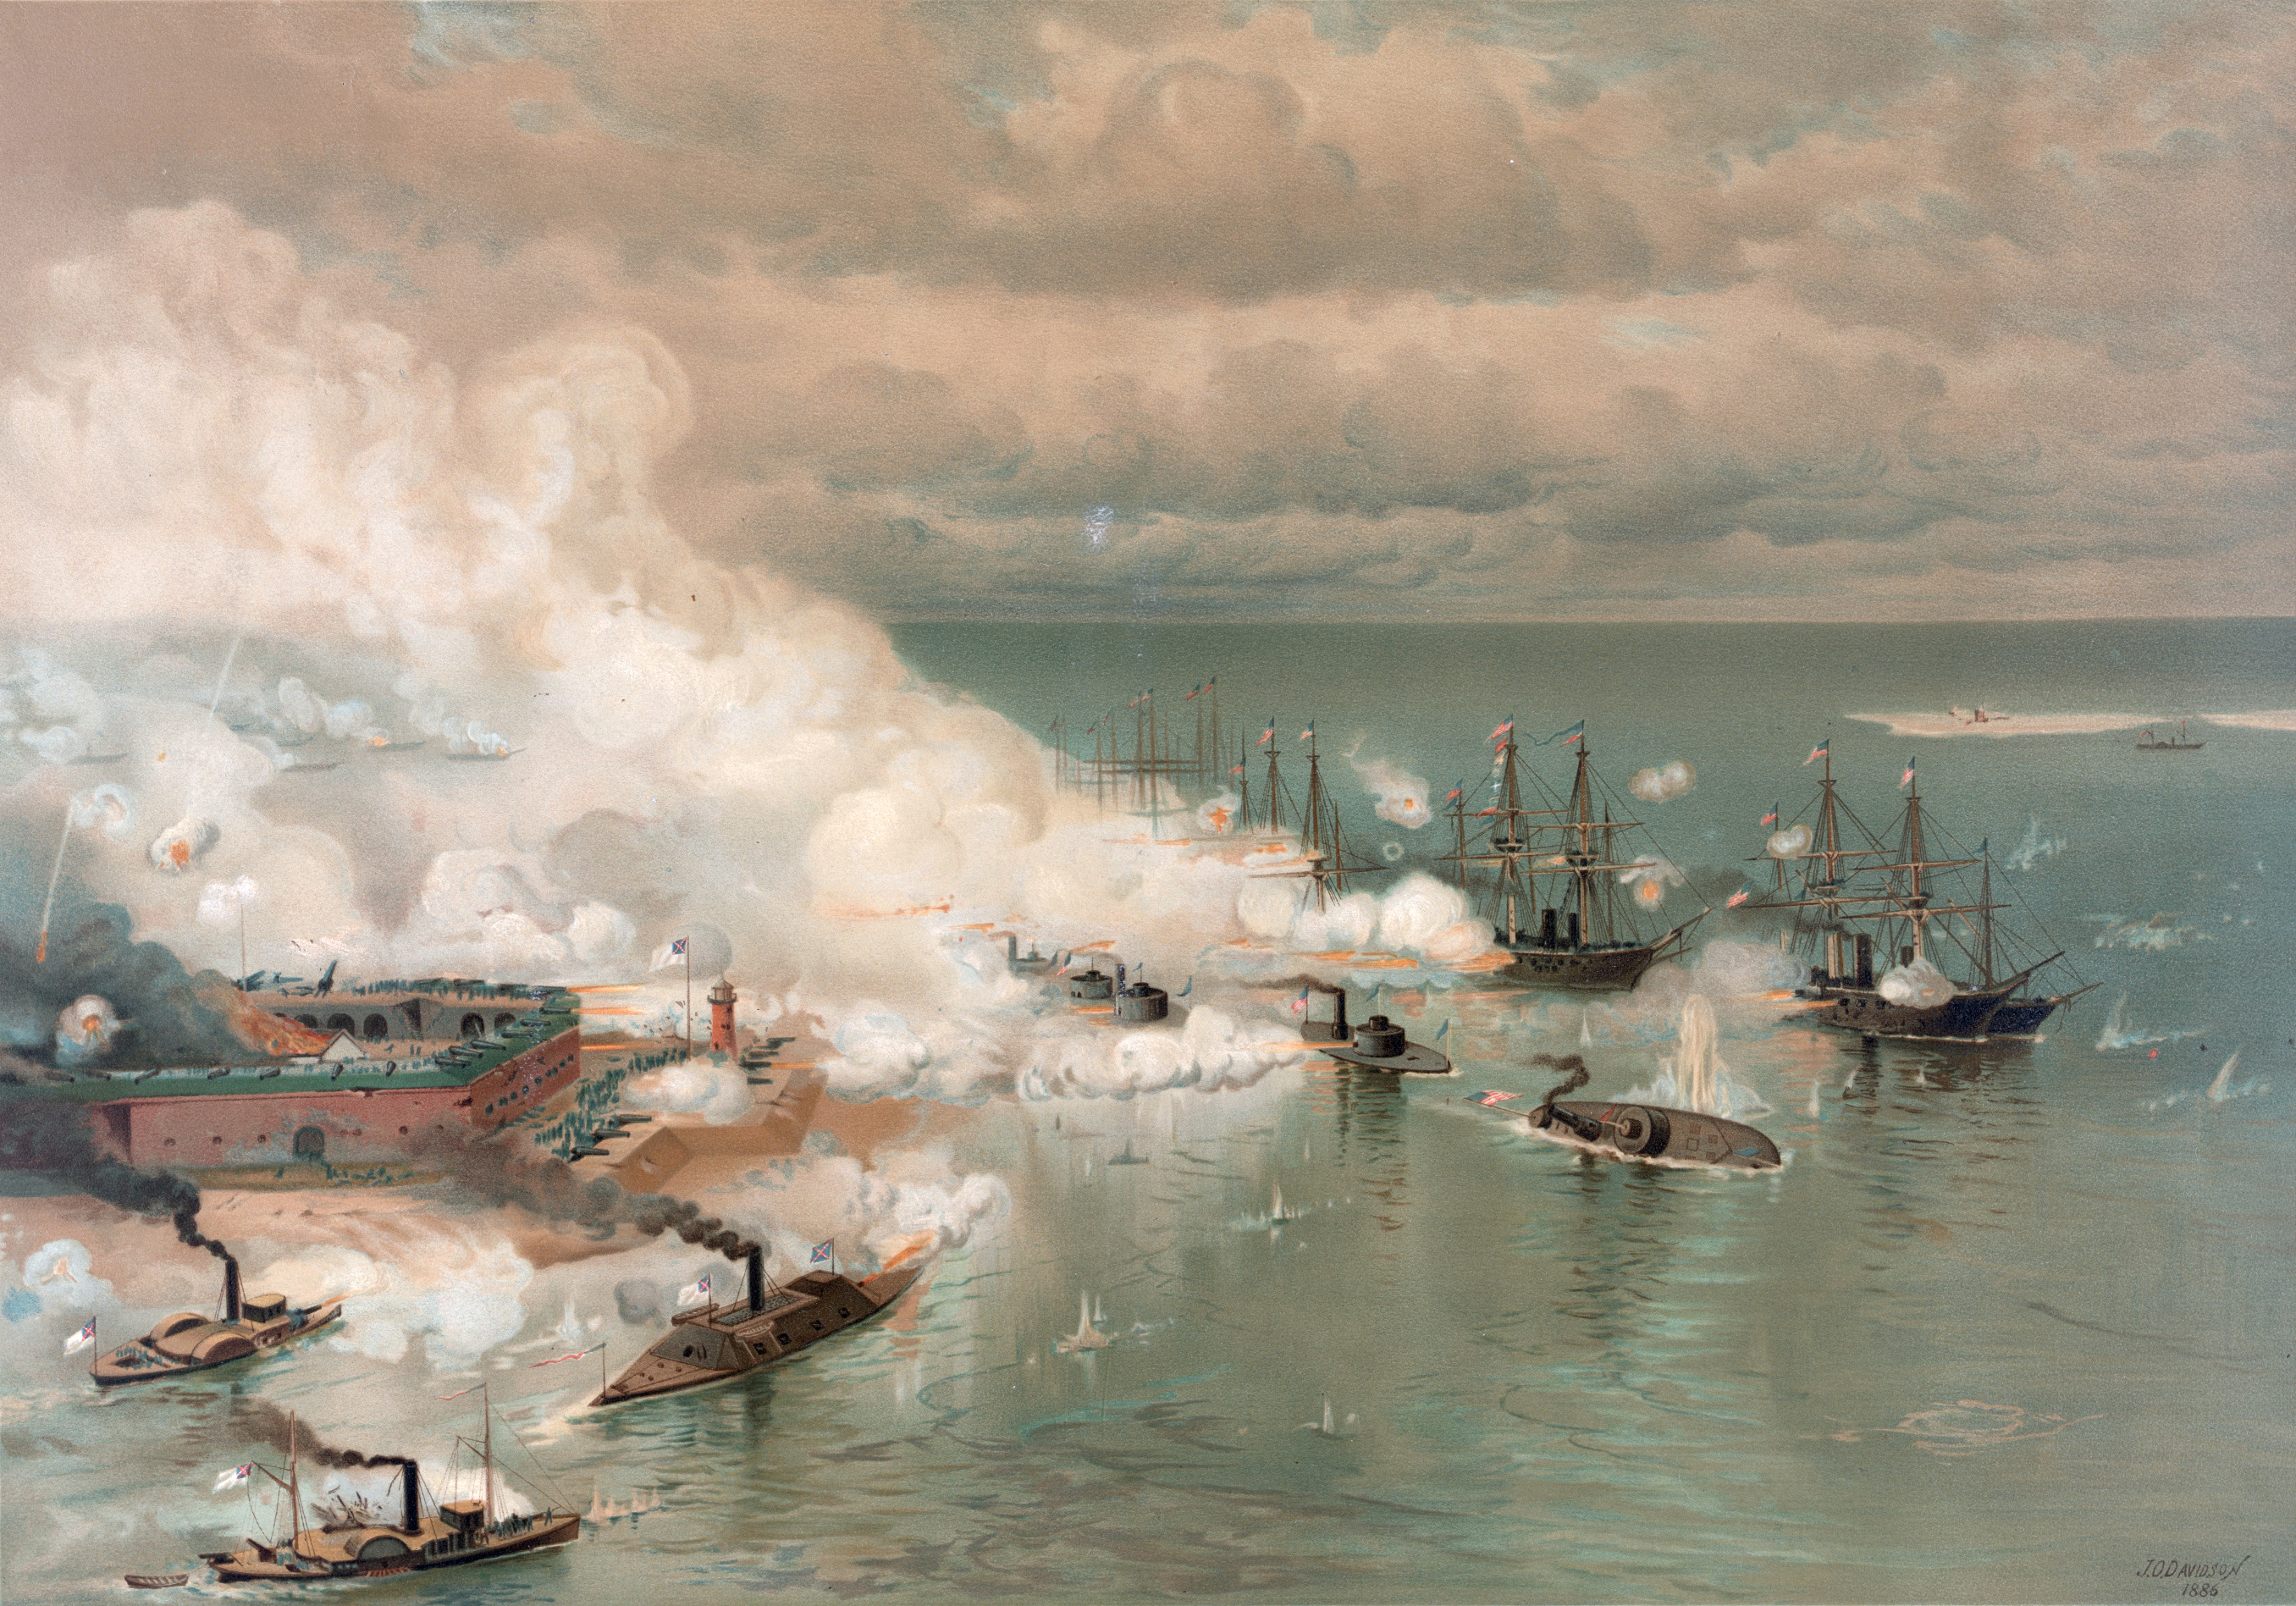 Julius O. Davidson's painting (published by Louis Prang) of the Battle of Mobile Bay, August 5, 1864.